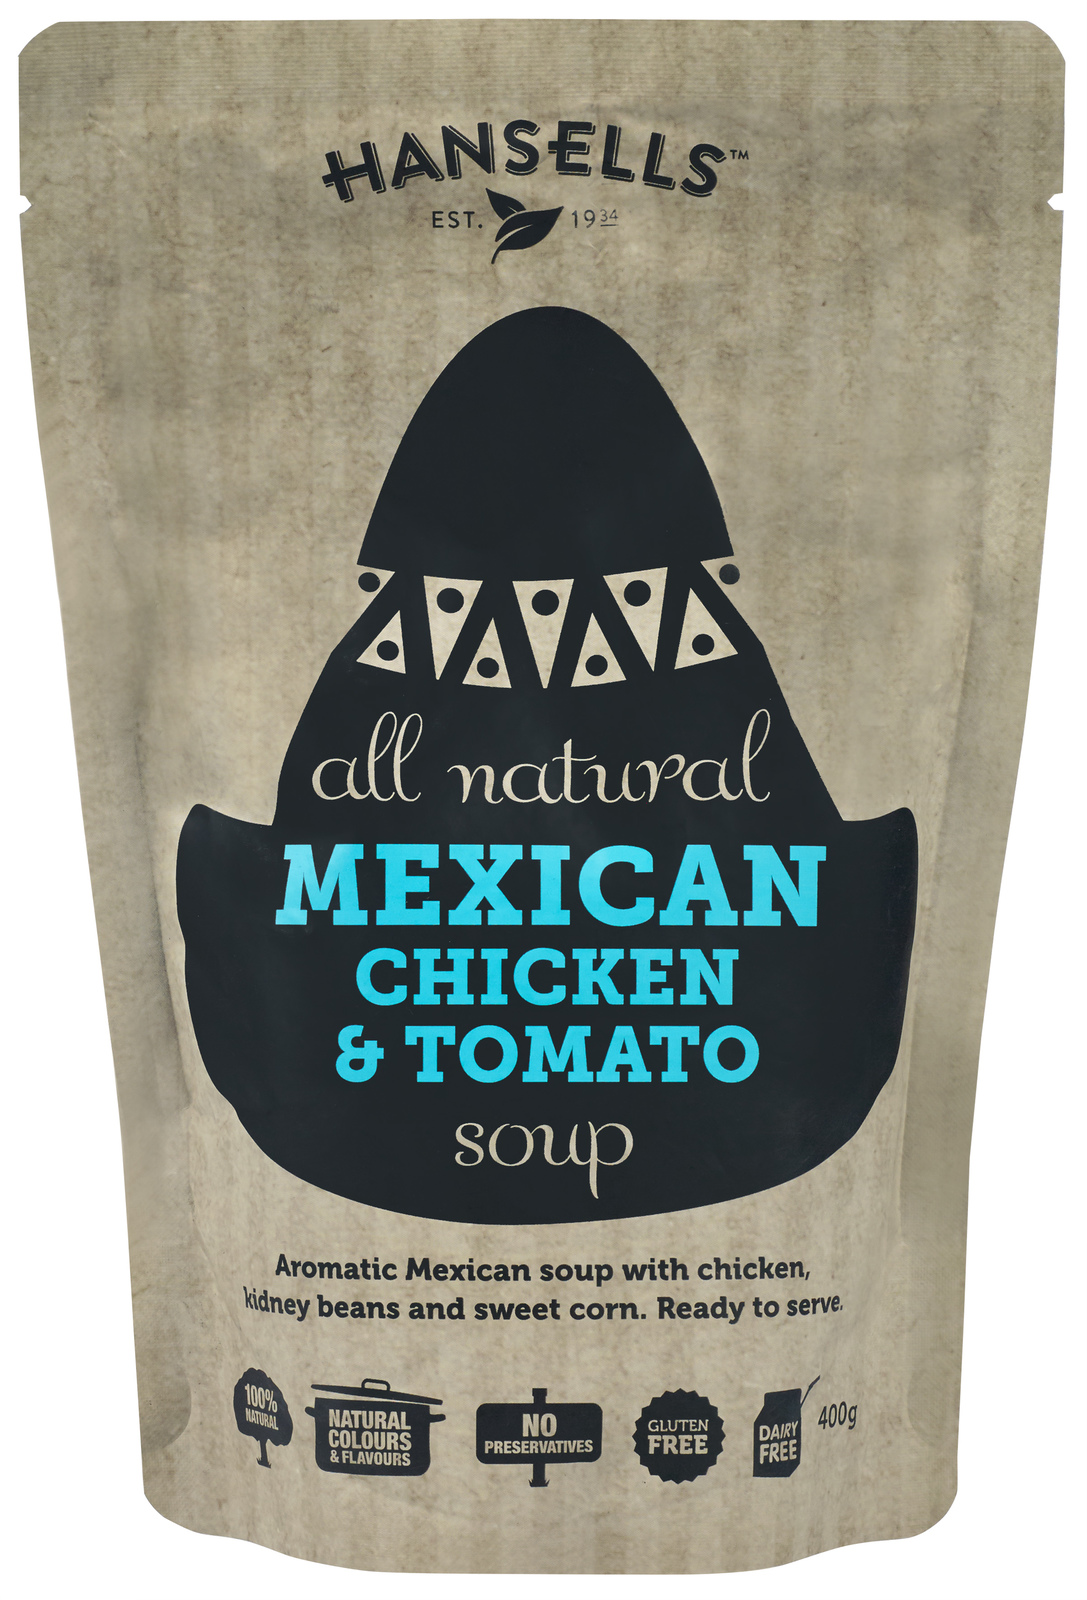 Hansells: All Natural Soup - Mexican Chicken & Tomato (6 x 400g) image